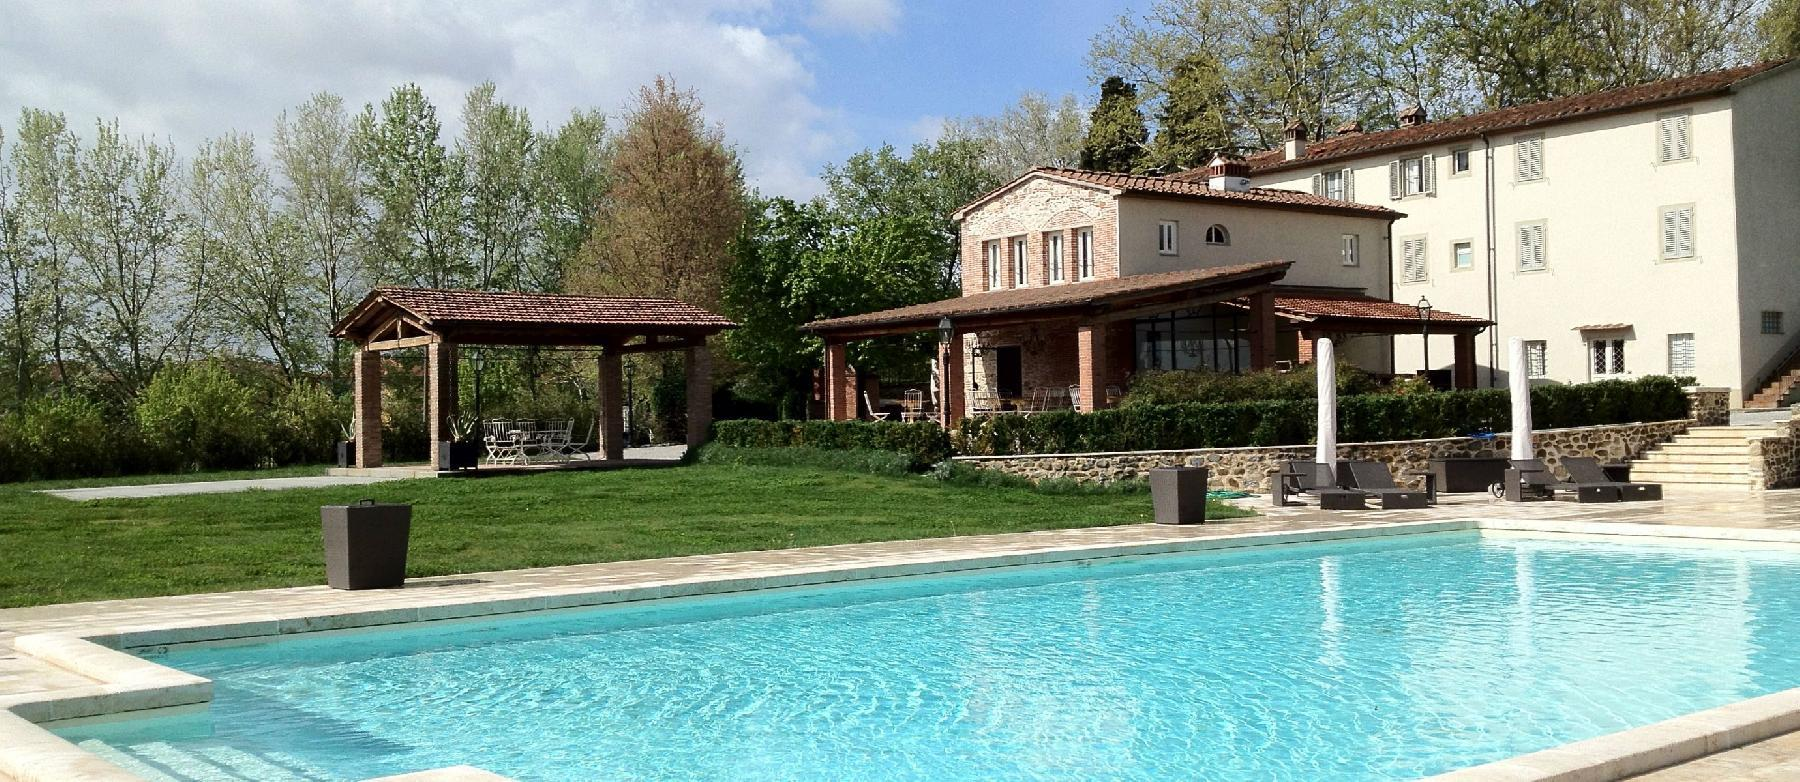 amazing swimming pool of Tuscany - The Tuscan Mansion luxury apartment